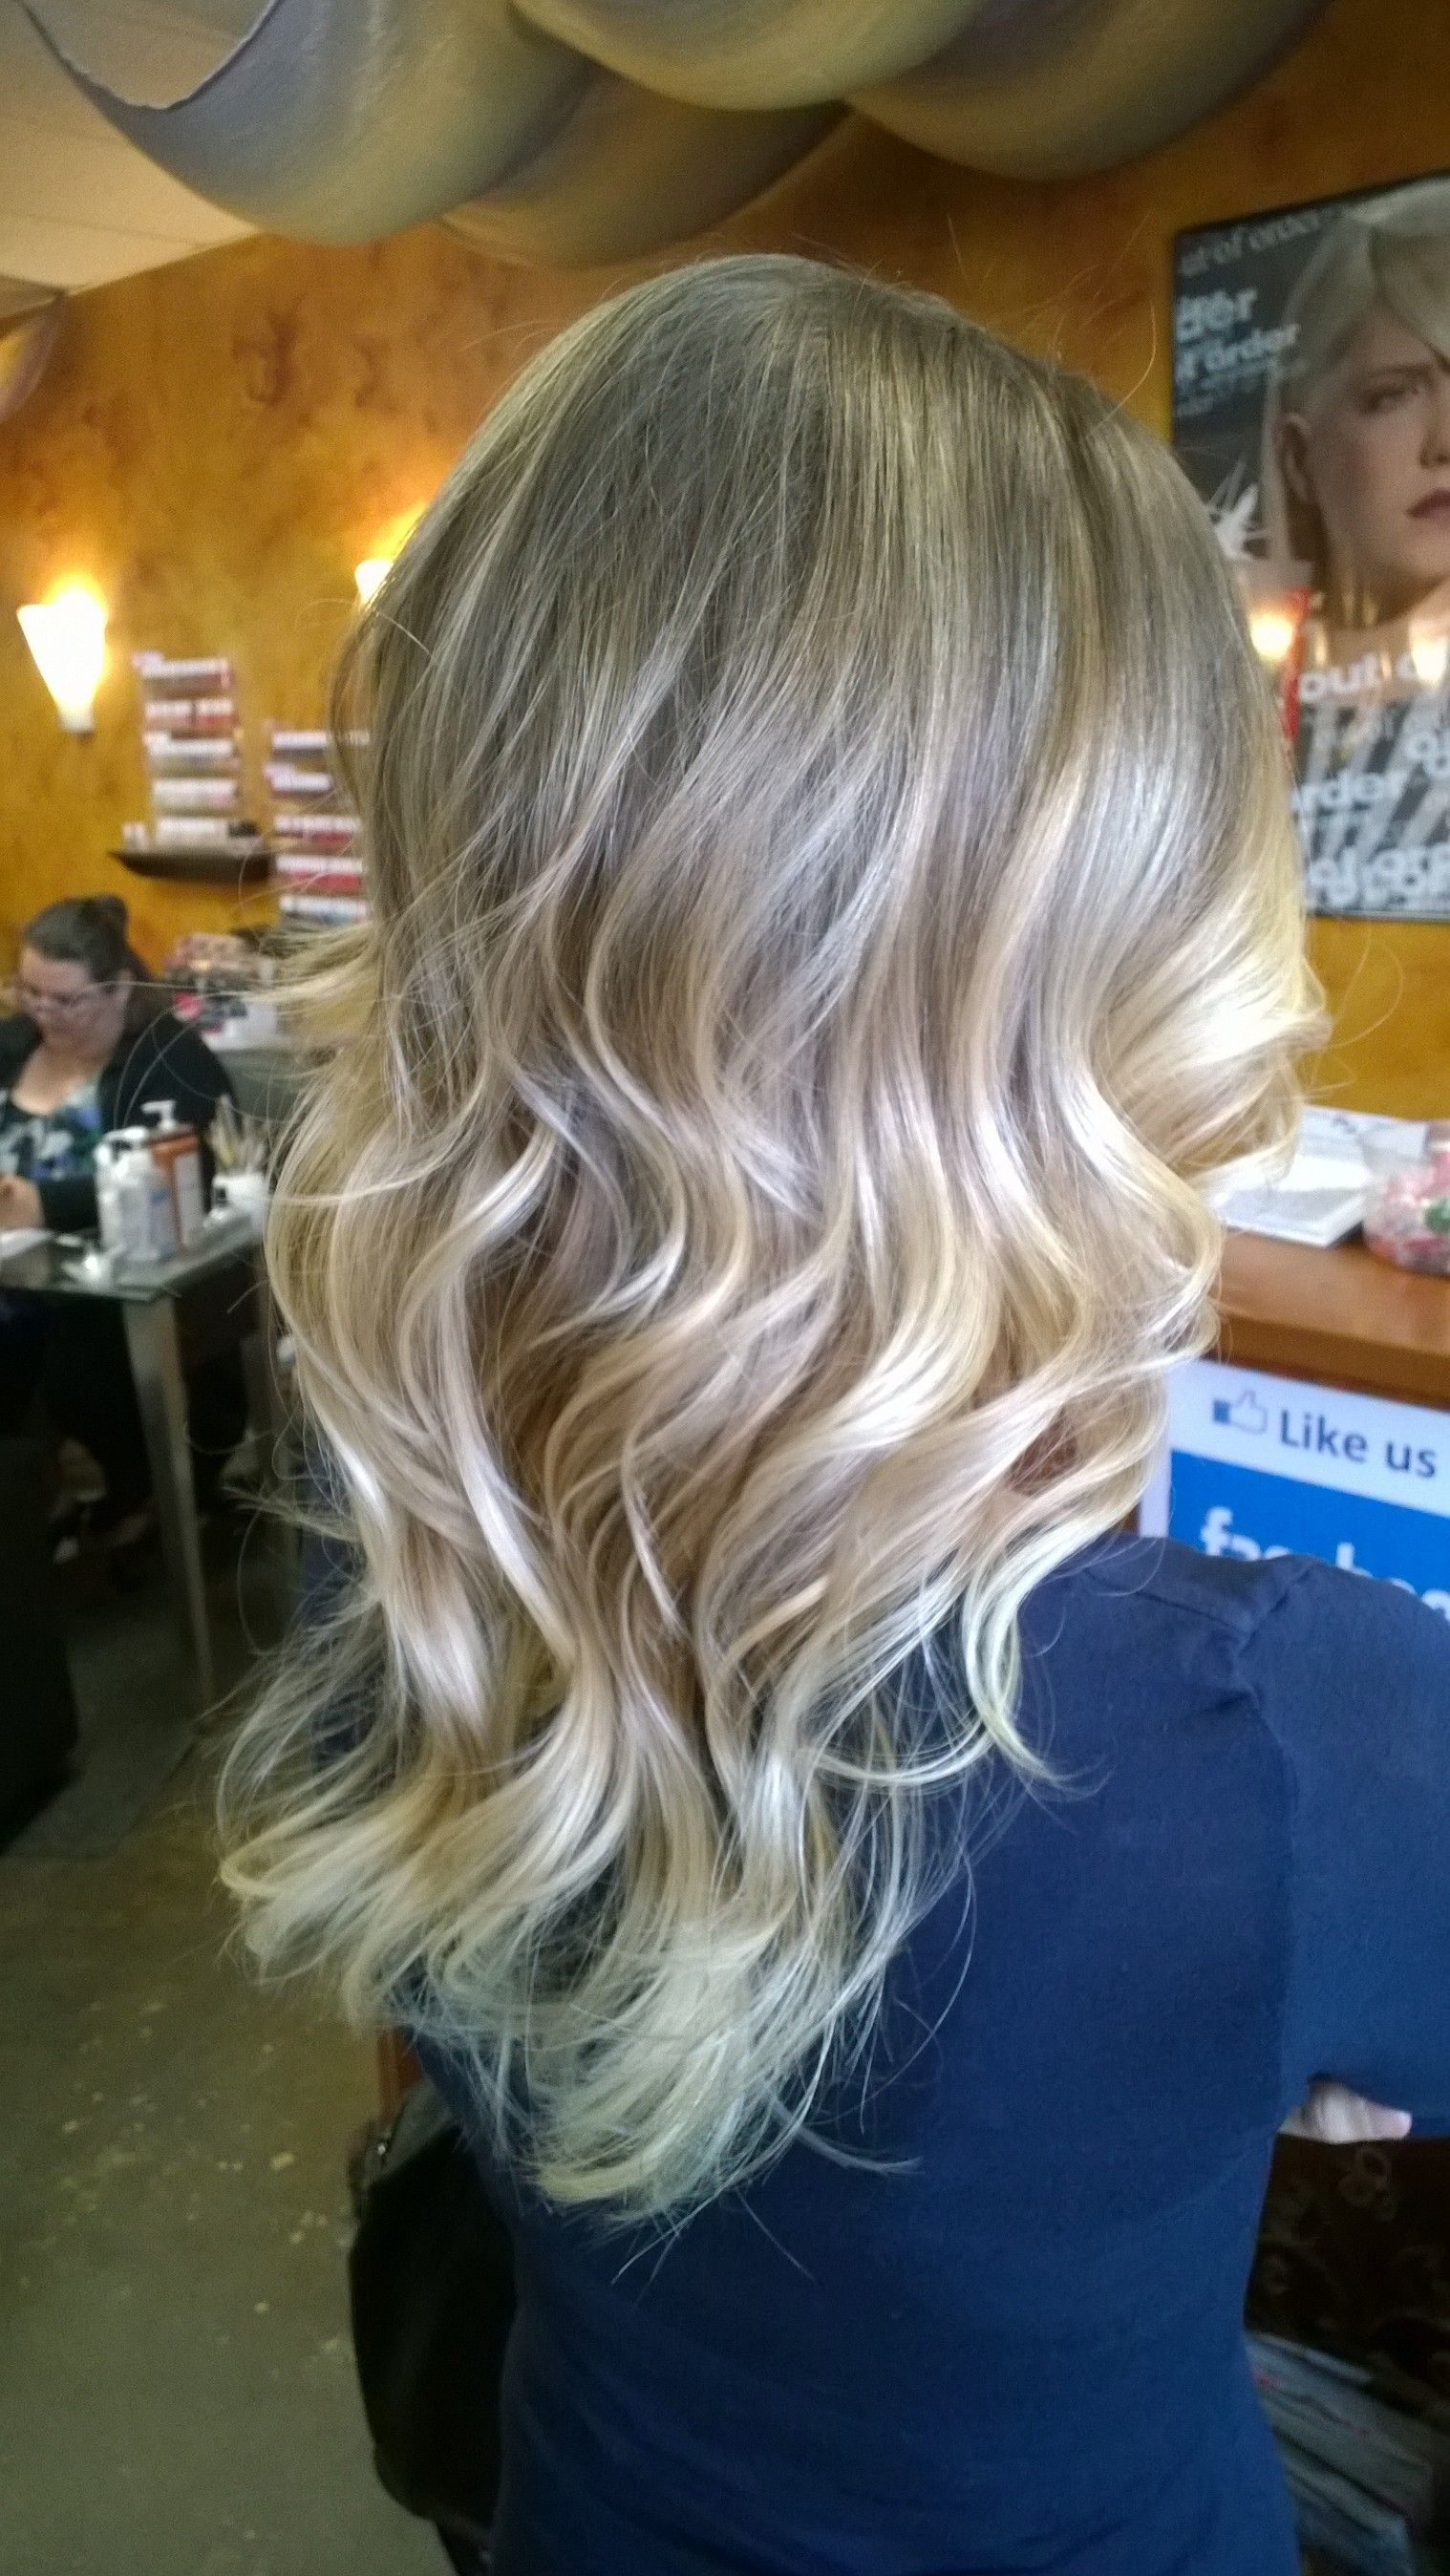 Blonde Ombre Hair Coloring Pretty Low Maintenance Look Done By